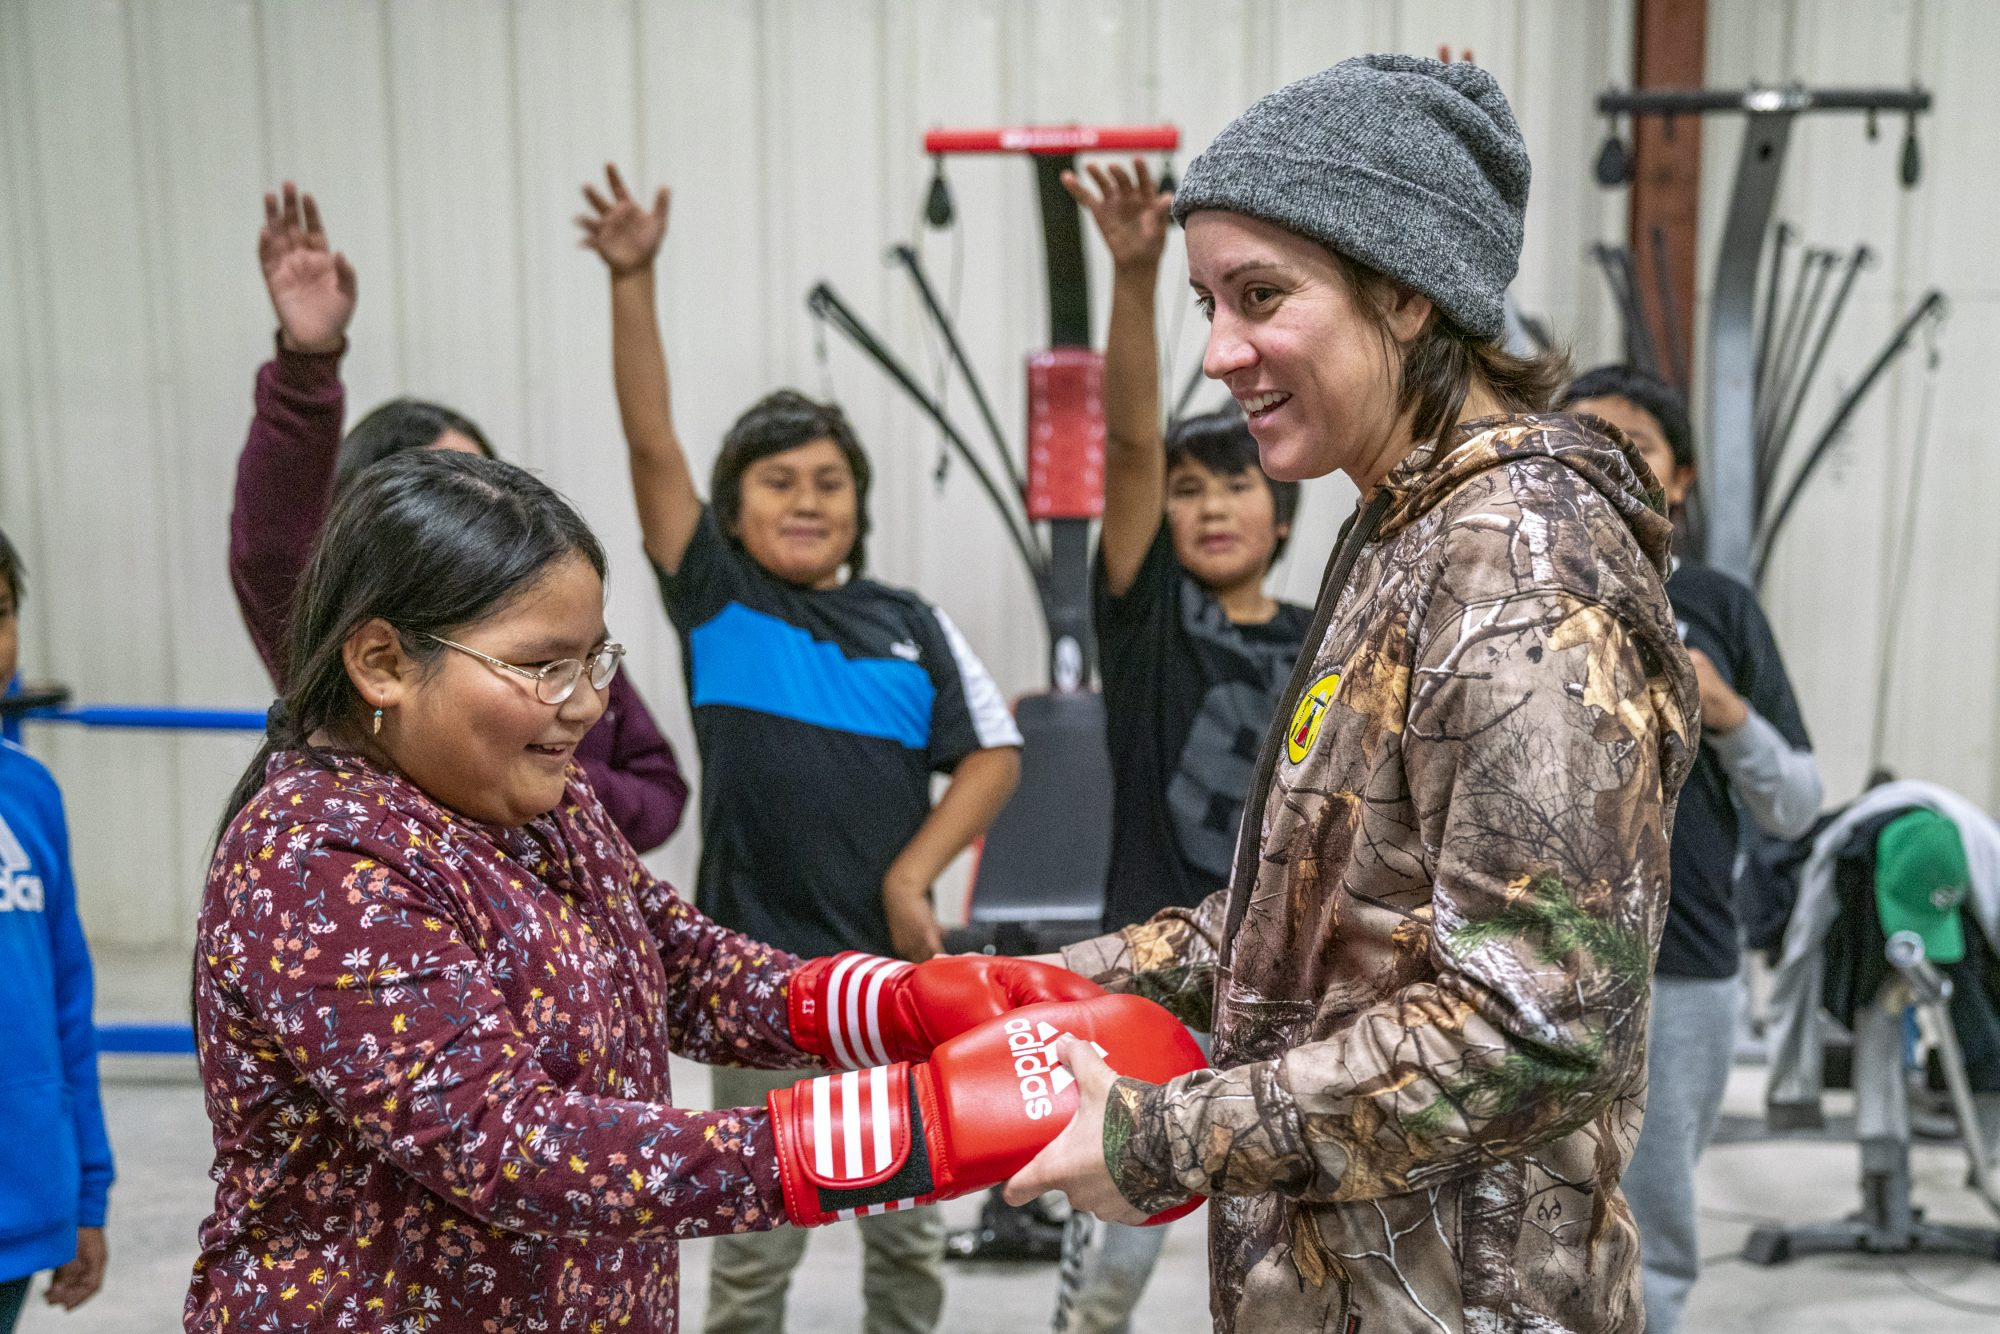 Mary Spencer shares her boxing gloves with a young student